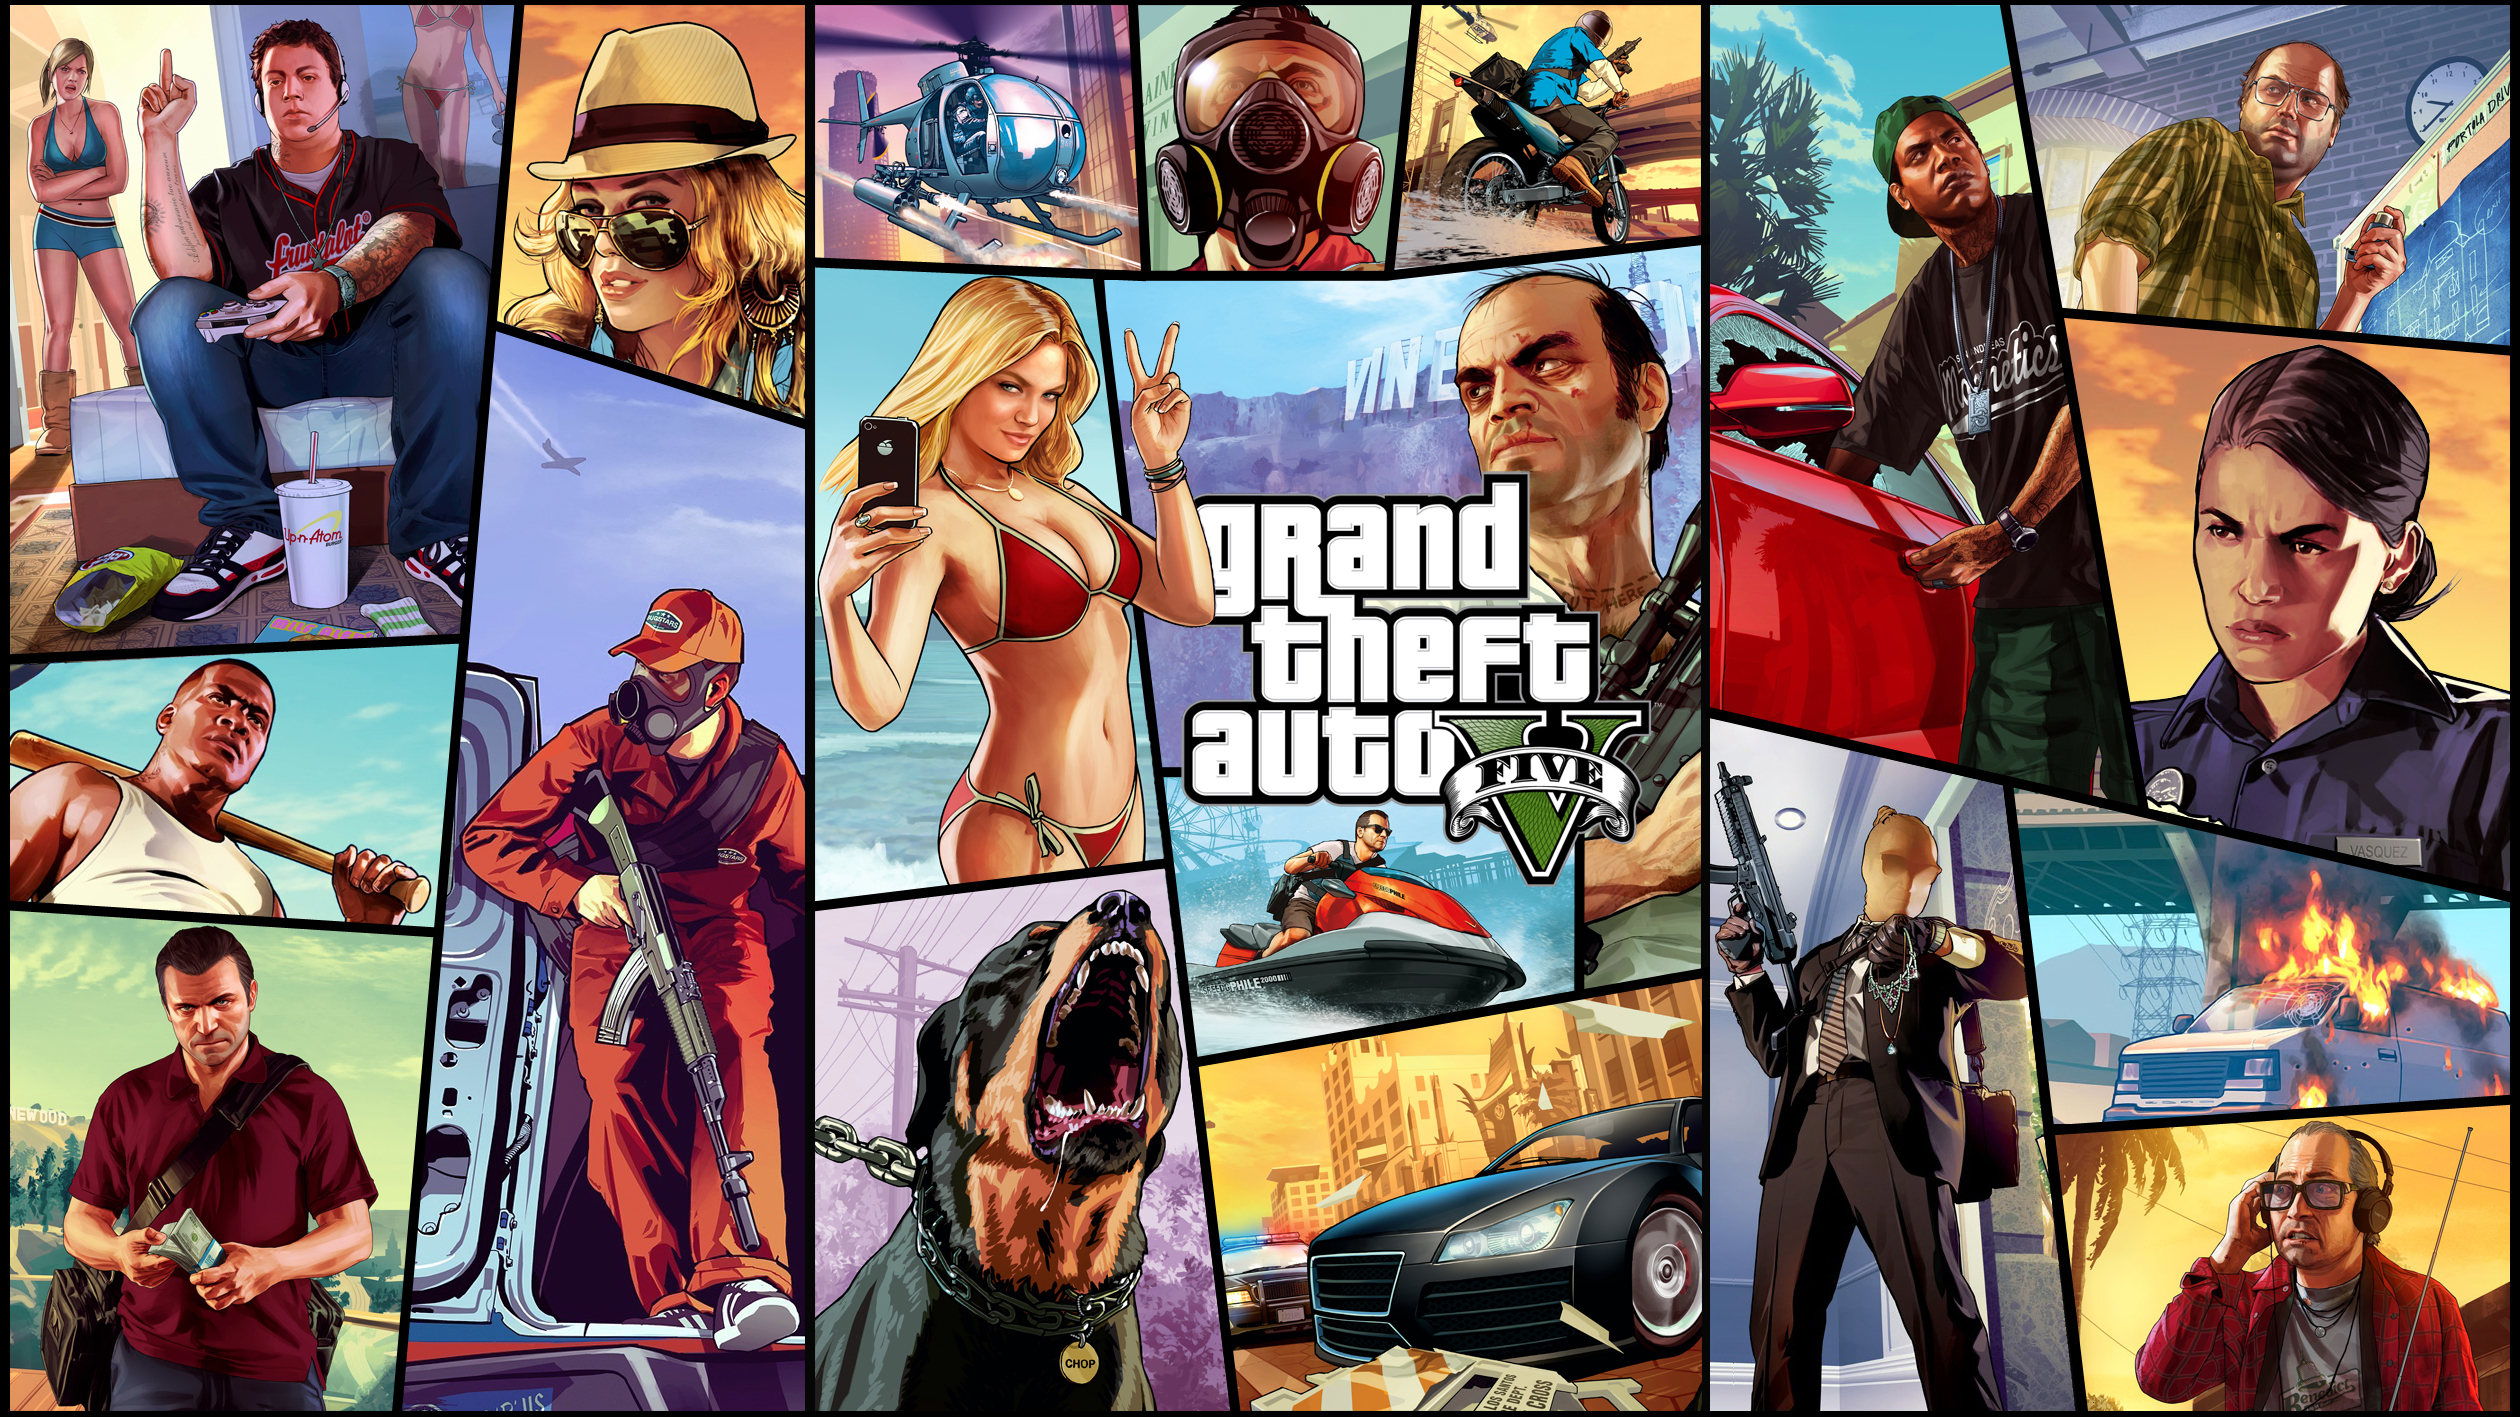 grand theft auto 5 wallpaper (29 wallpapers) – adorable wallpapers